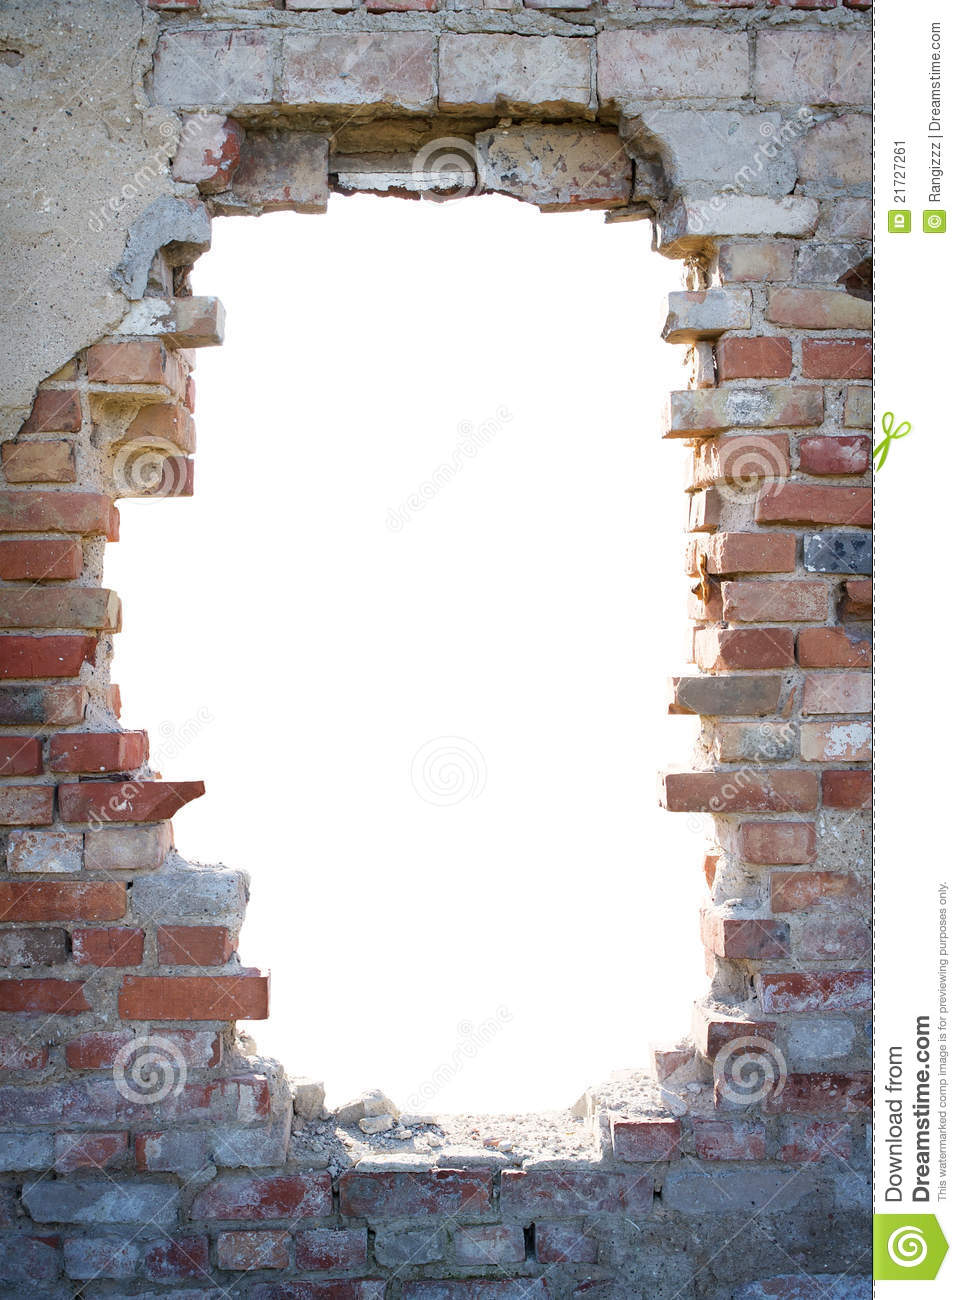 Hole In The Brick Wall With Copy Space Stock Image - Image ...